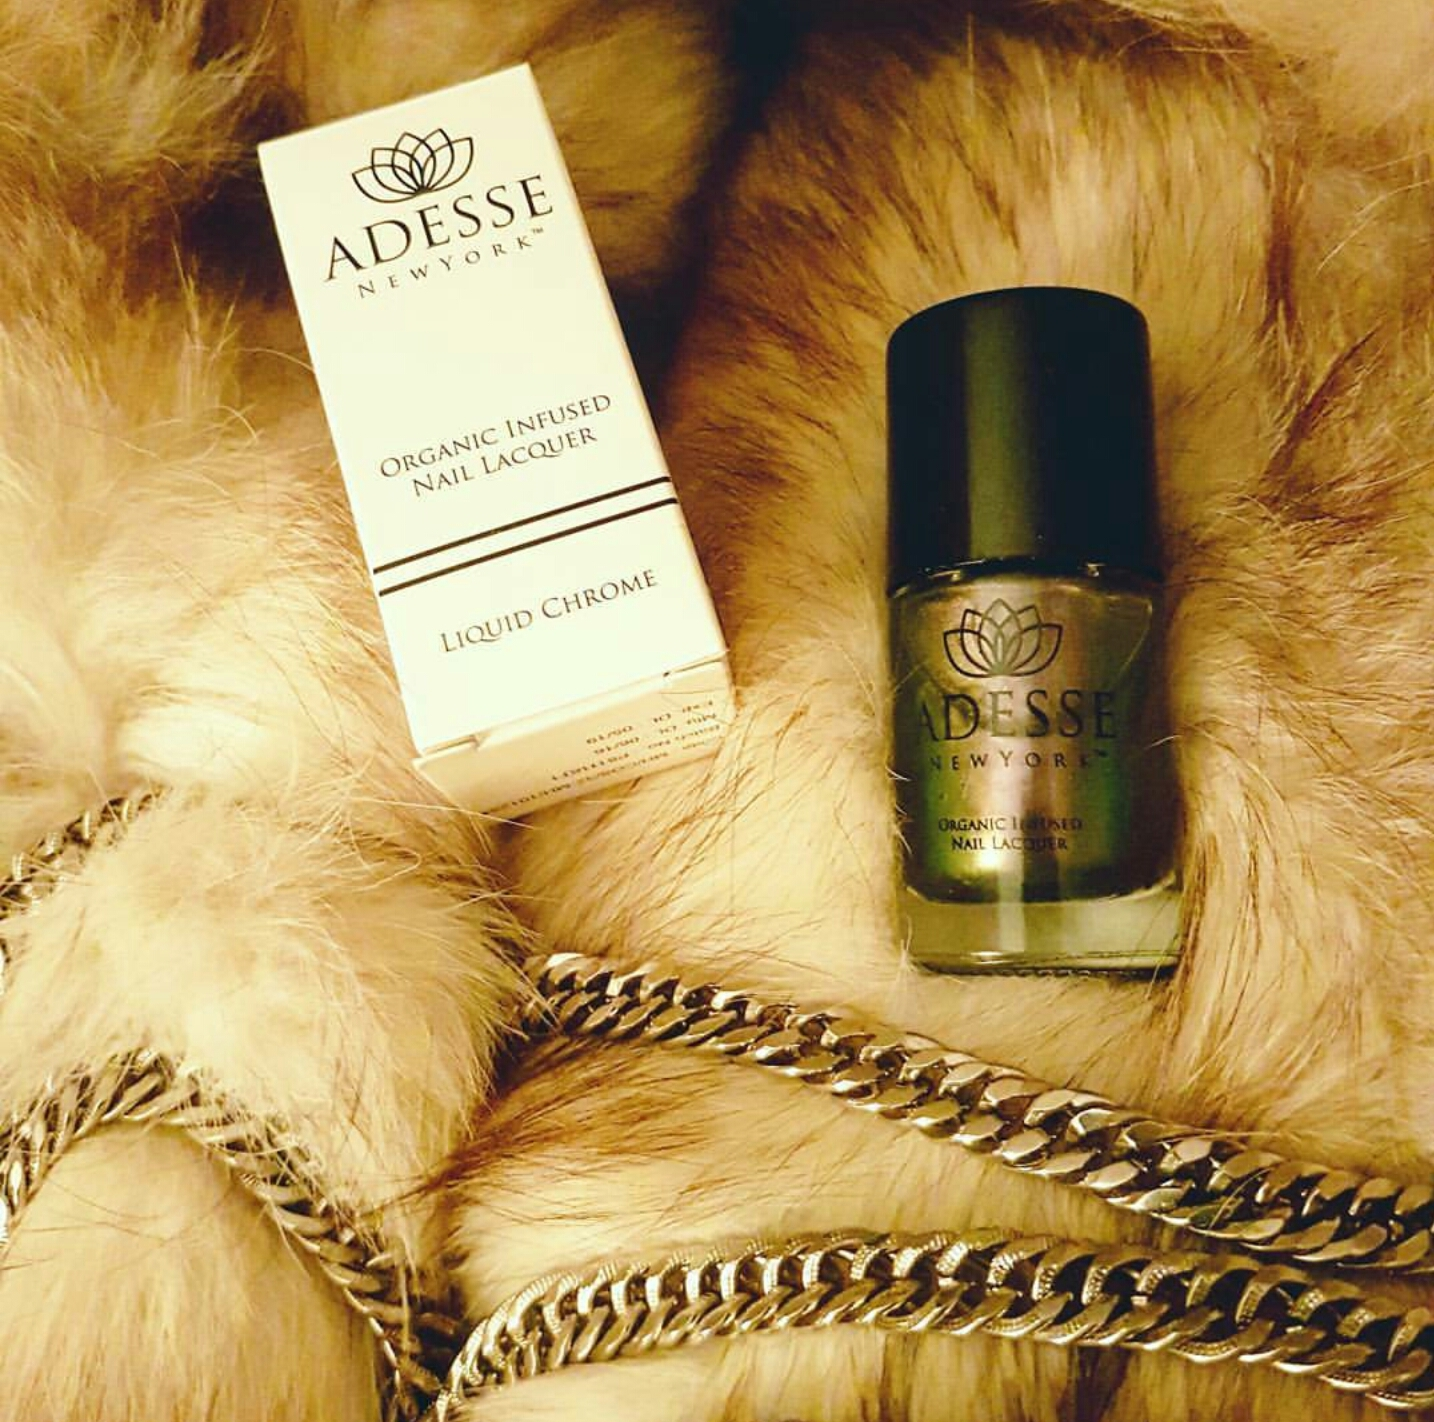 Adesse Organic Infused Nail Lacquer Reviews In Nail Polish Chickadvisor